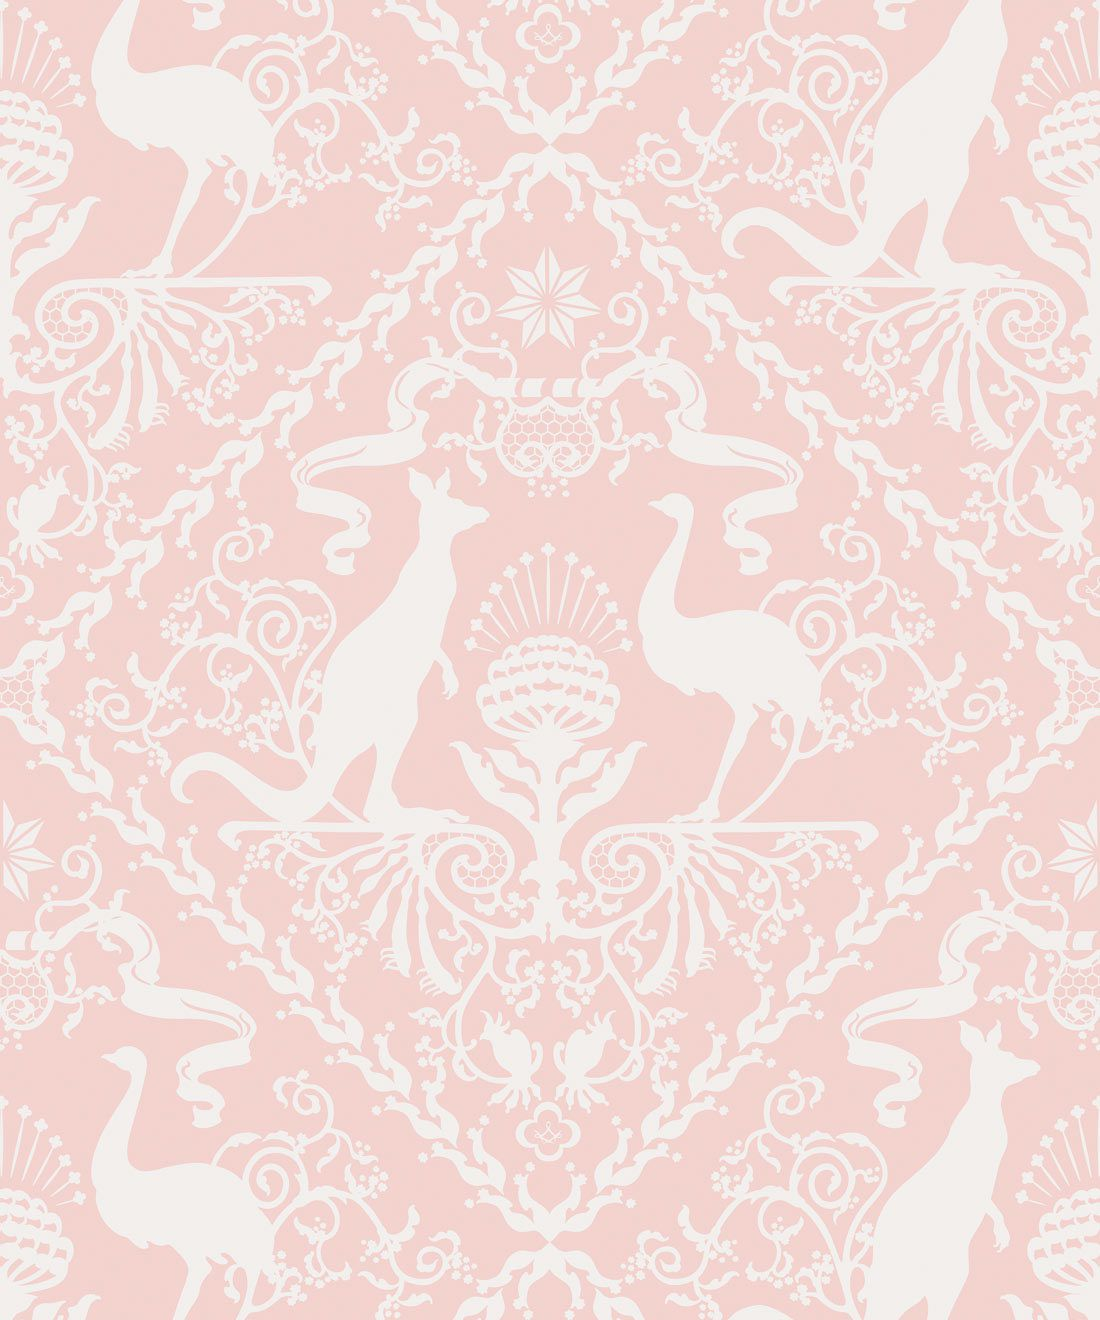 In Australia We Trust Coral • Australian Wallpaper • Australian Coat of Arms • Milton & King Europe • Pink Wallpaper Swatch